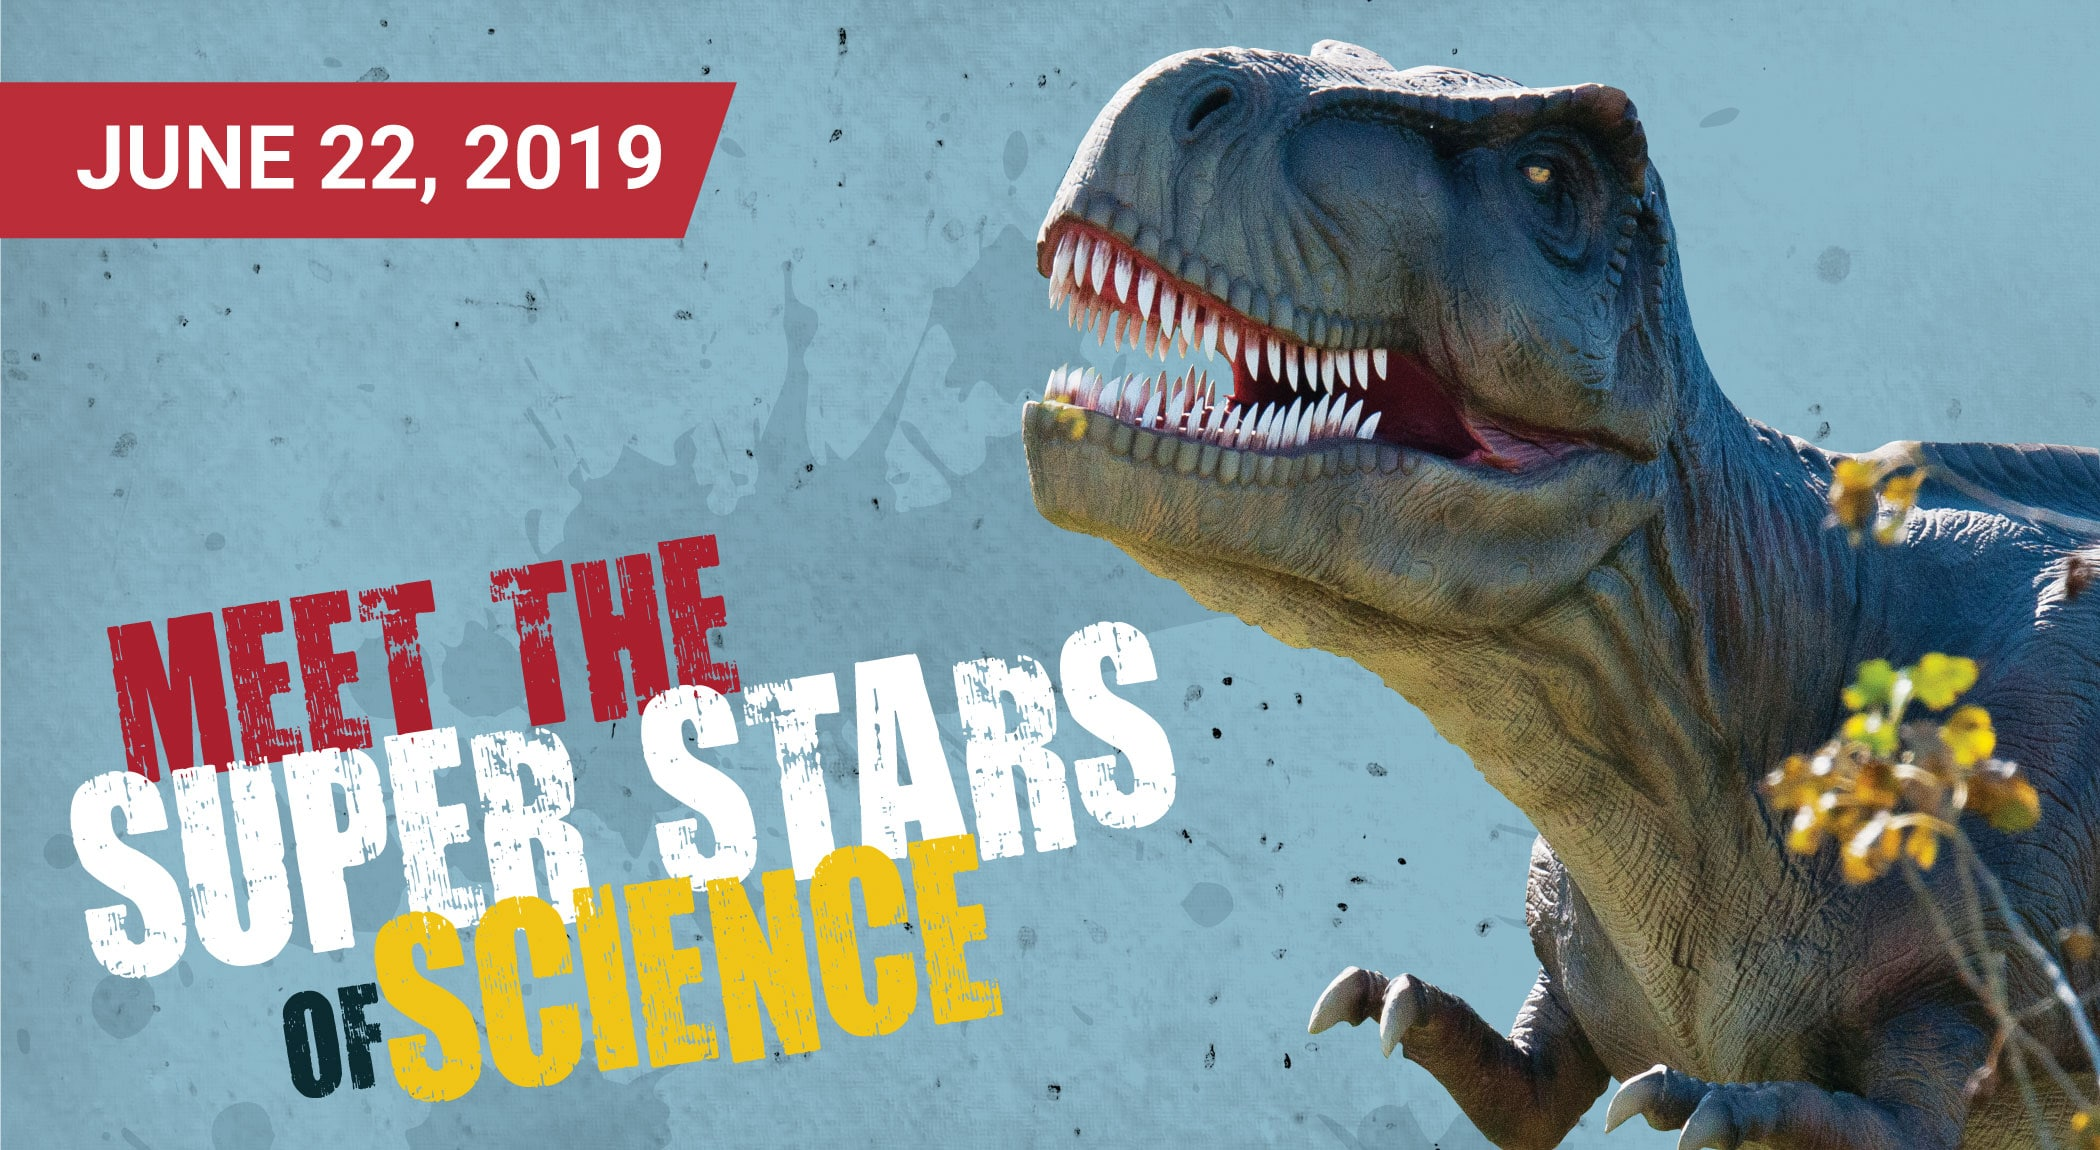 Super Stars of Science - June 22